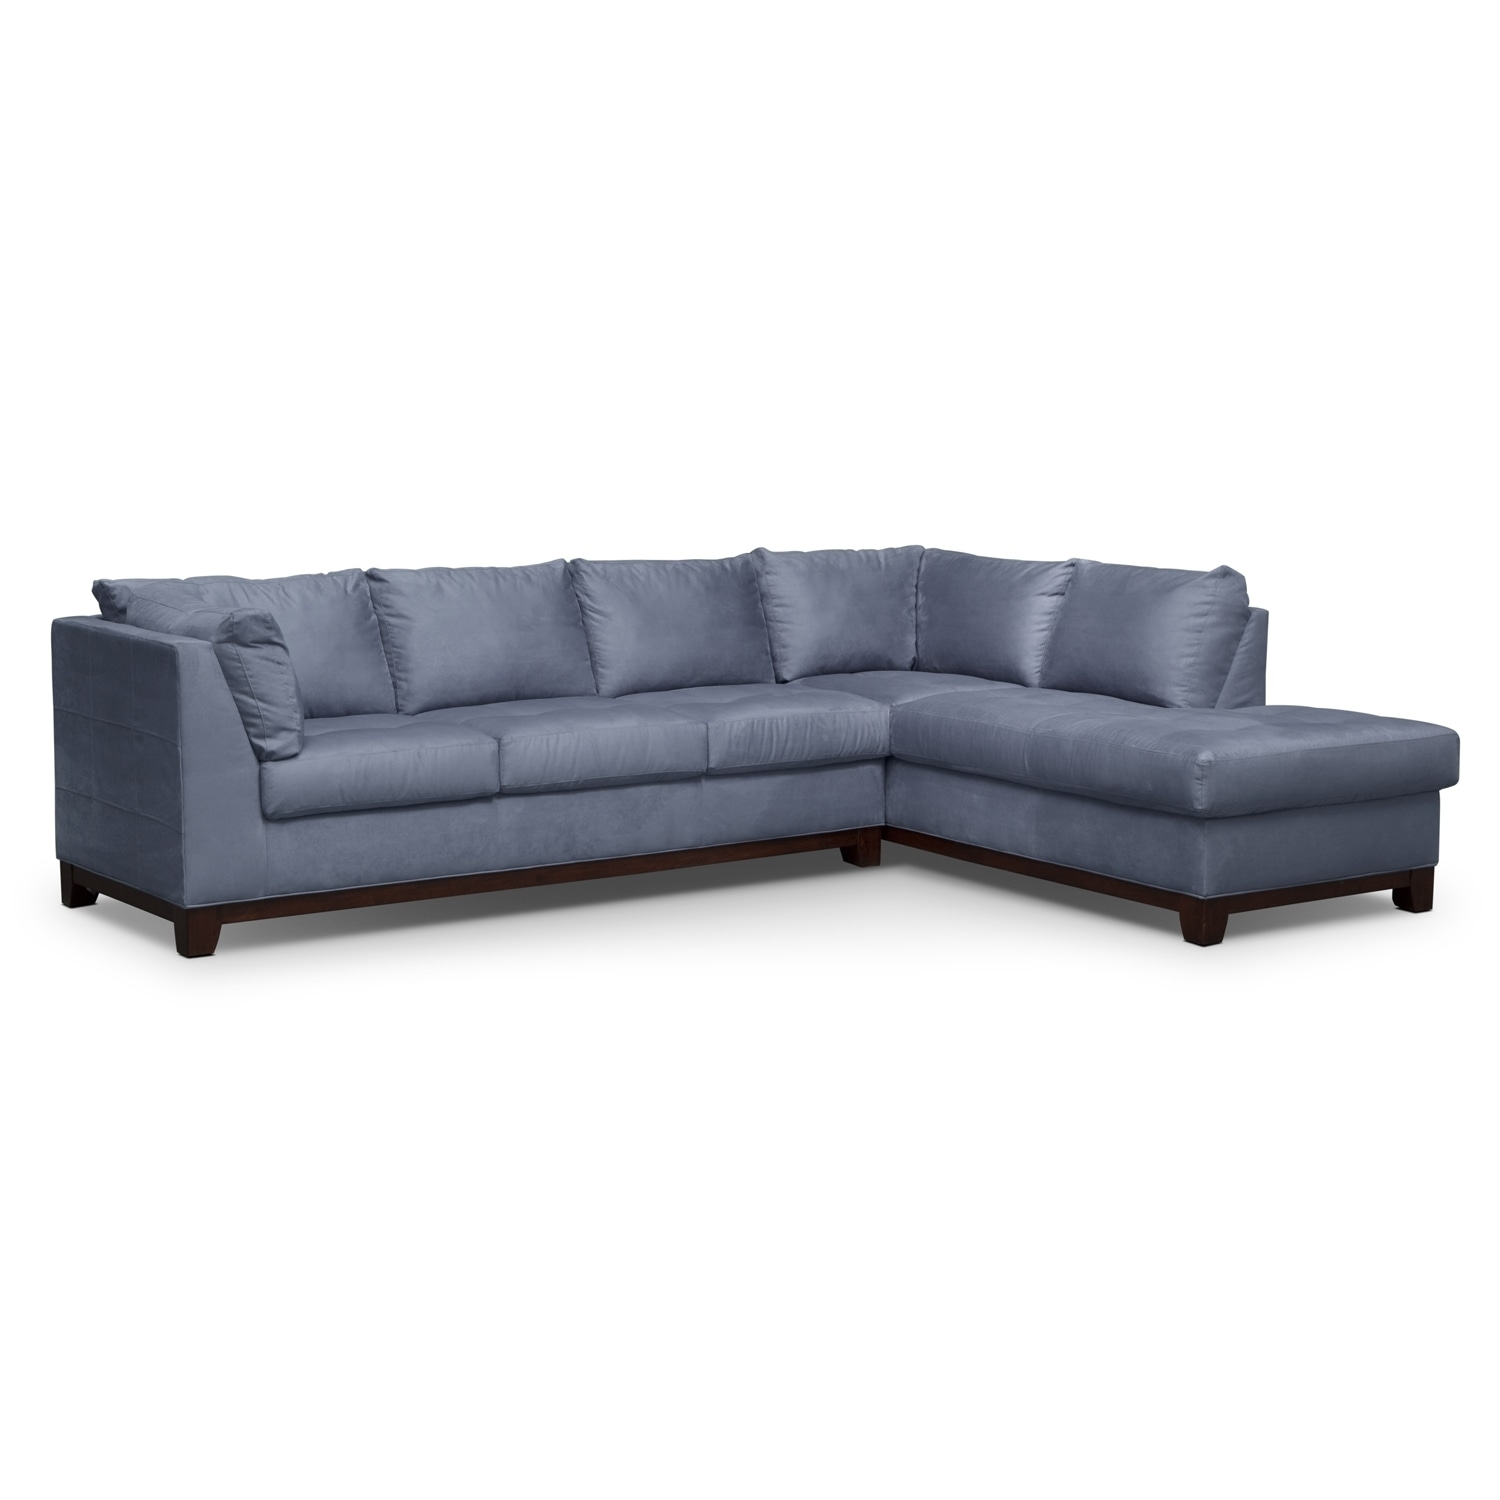 Http://acwc/cr-Laine-Sectional.html Http://acwc/wp-Content/uploads intended for Tenny Cognac 2 Piece Right Facing Chaise Sectionals With 2 Headrest (Image 13 of 30)